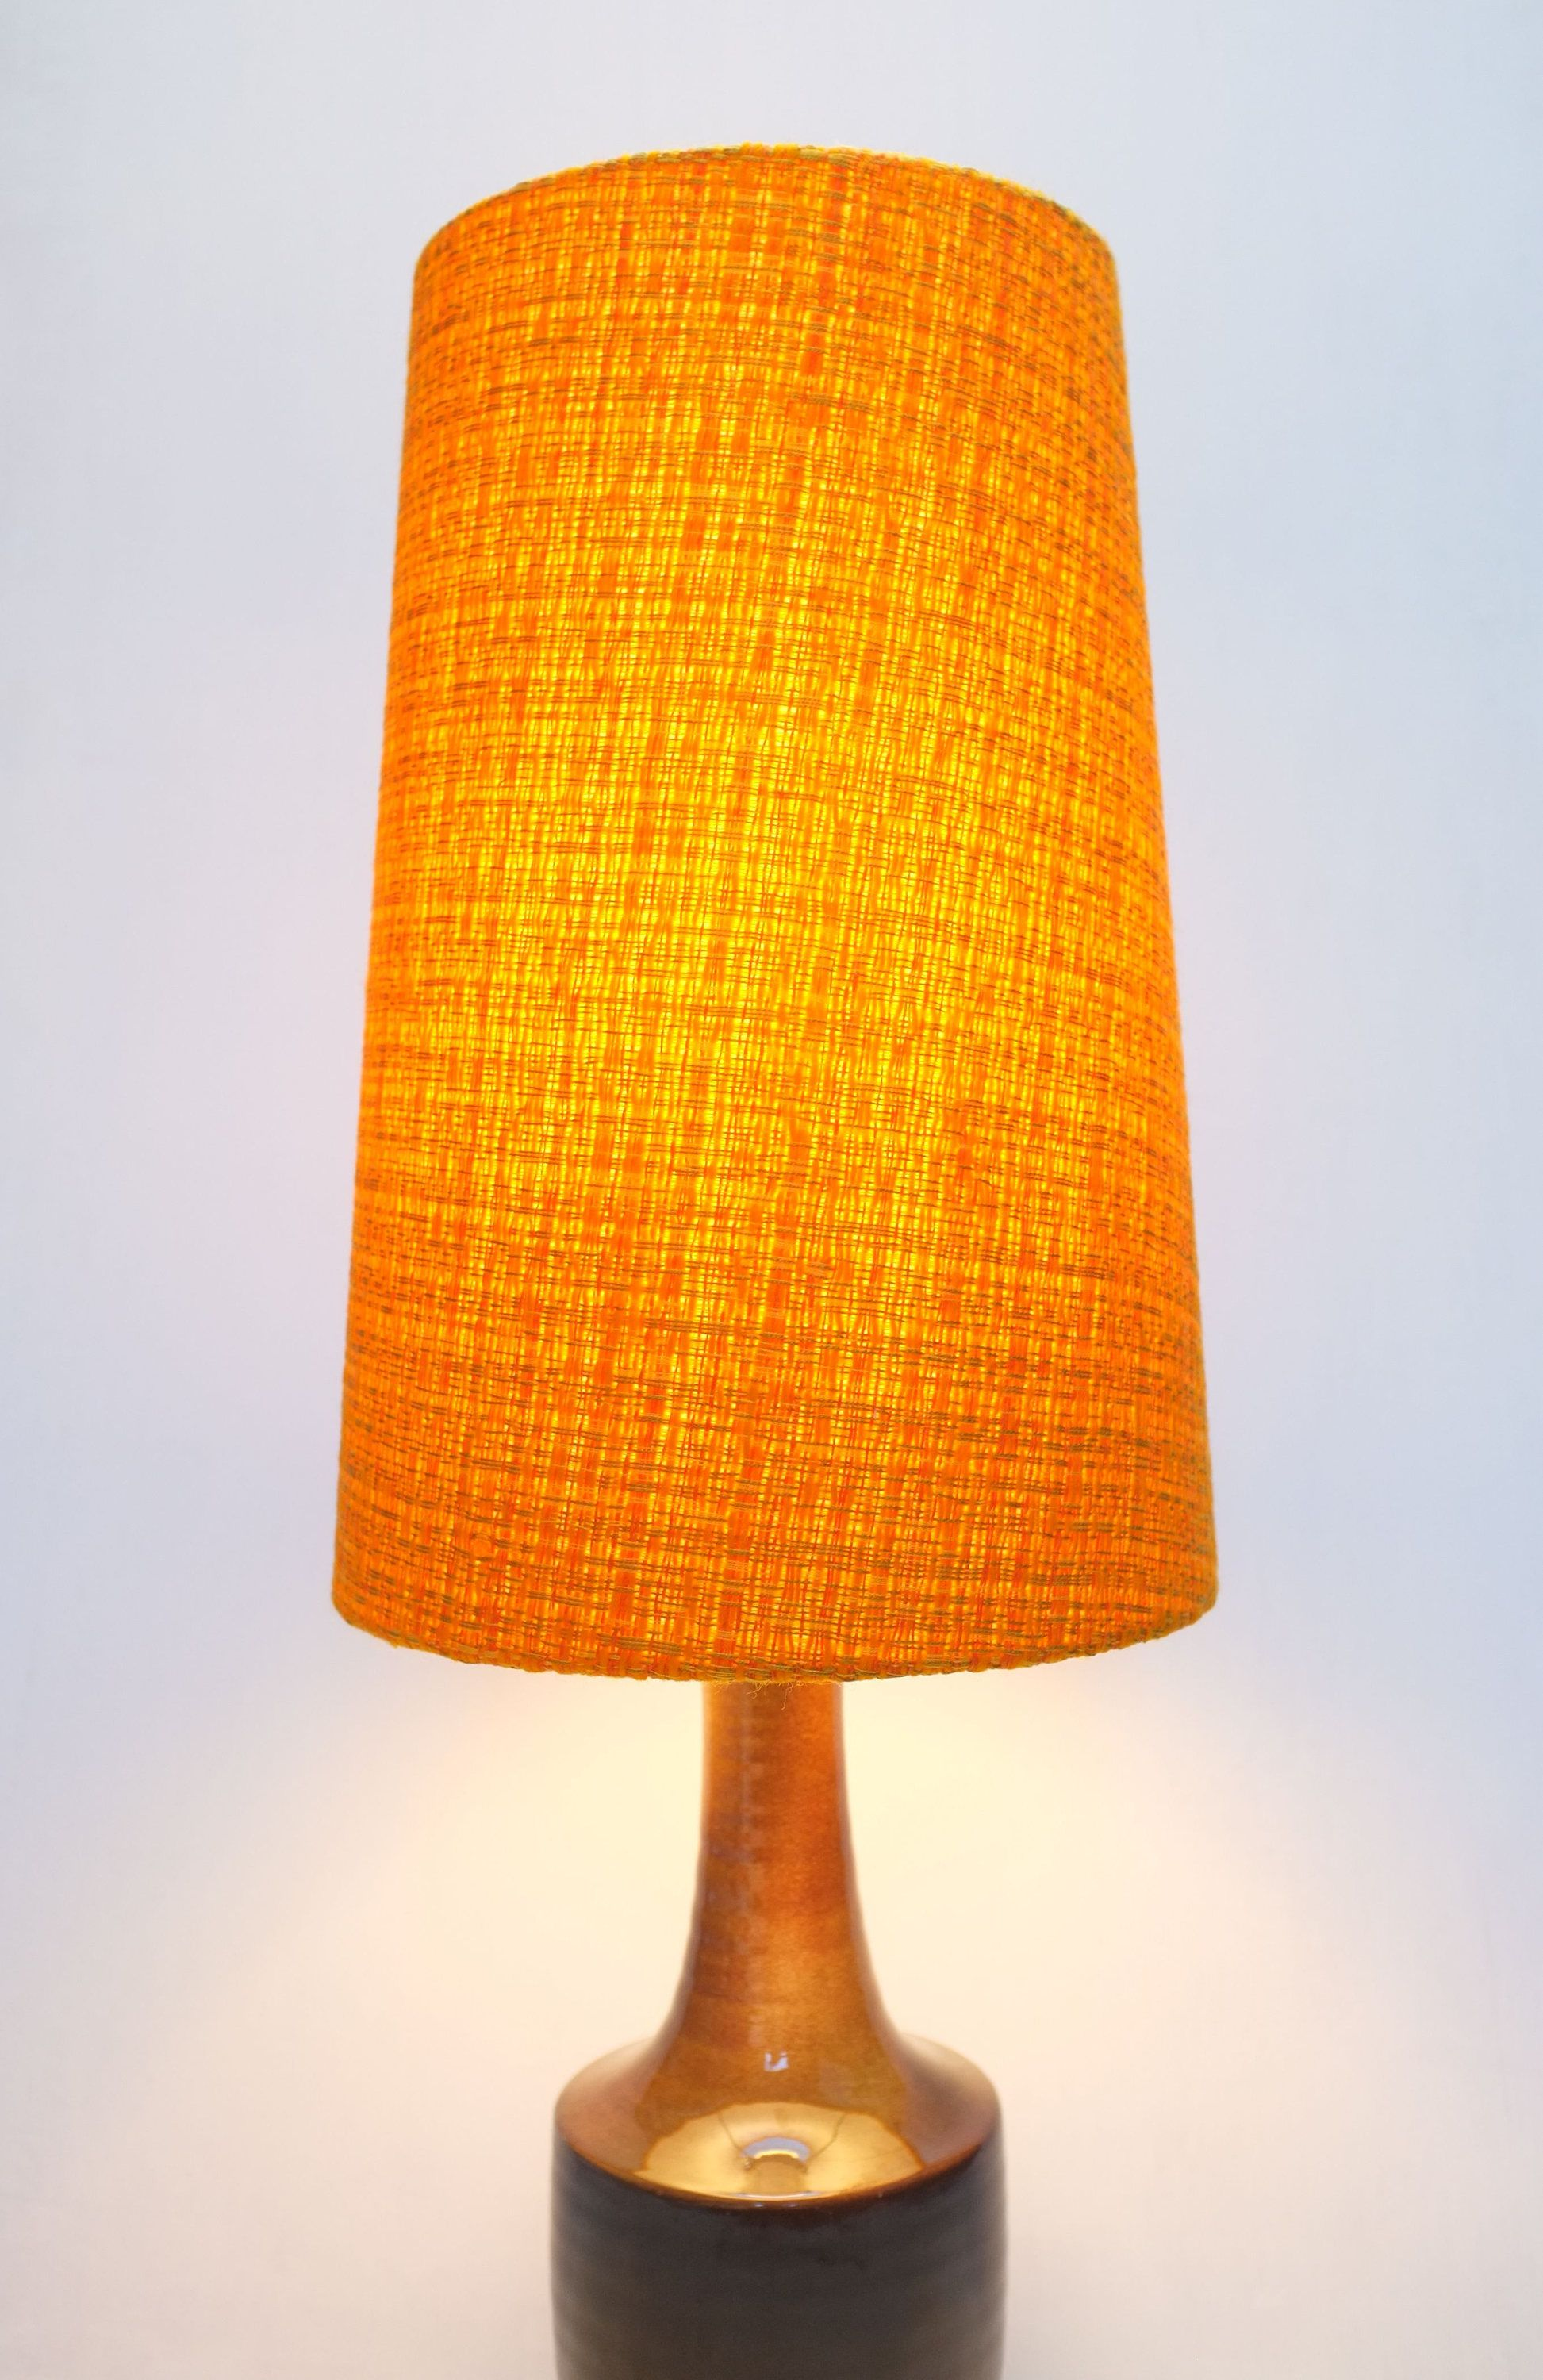 Retro lampshade original fabric extra tall conical 60s70s retro lampshade original fabric extra tall conical 60s70s orange gold vintage aloadofball Gallery